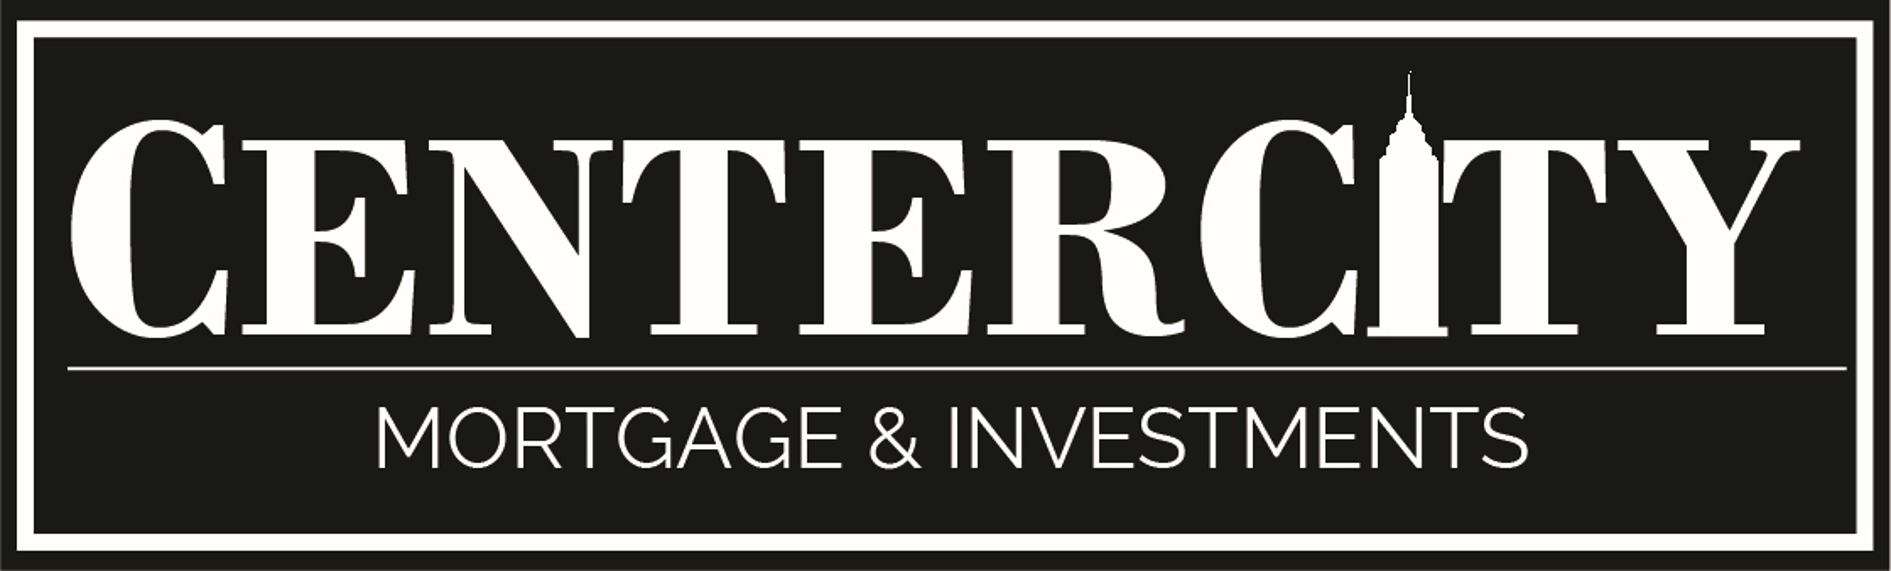 Center City Mortgage & Investment Logo